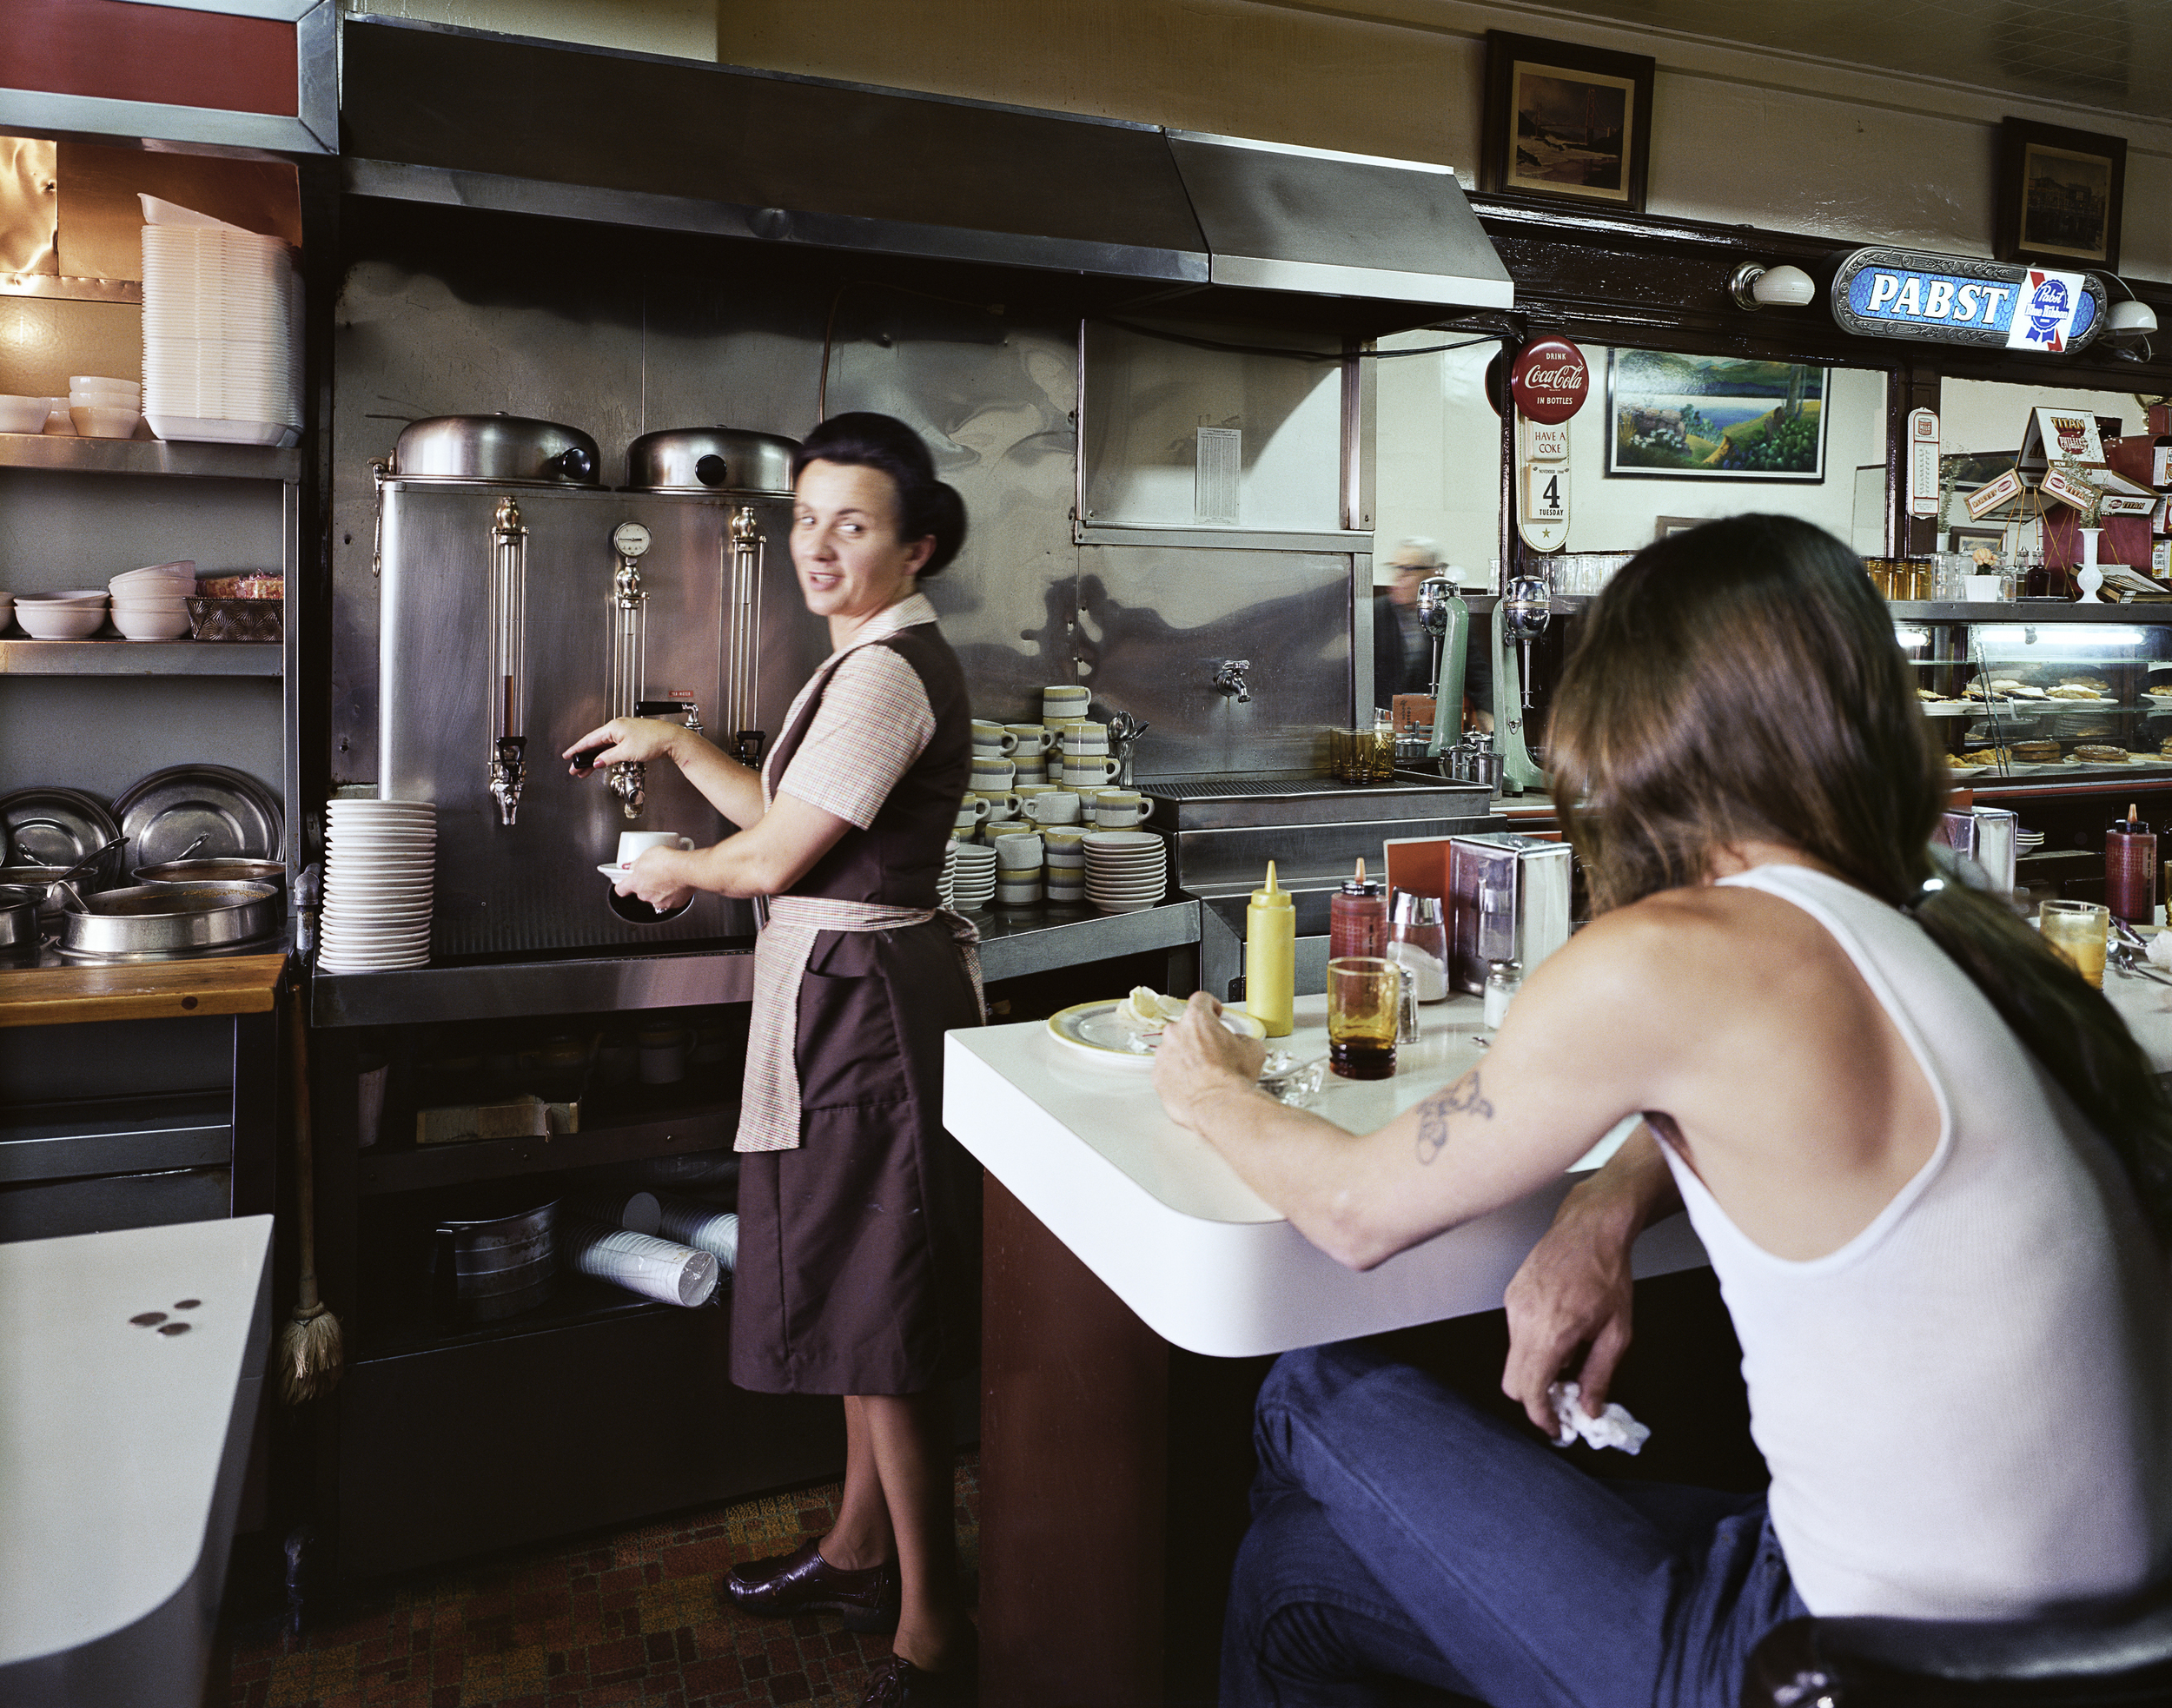 Pat serving coffee at the Gordon Cafe, 7th at Mission Street, 1980 Archival Pigment Print, 2016 16 x 20 inches, edition of 5 20 x 24 inches, edition of 2 30 x 40 inches, edition of 2